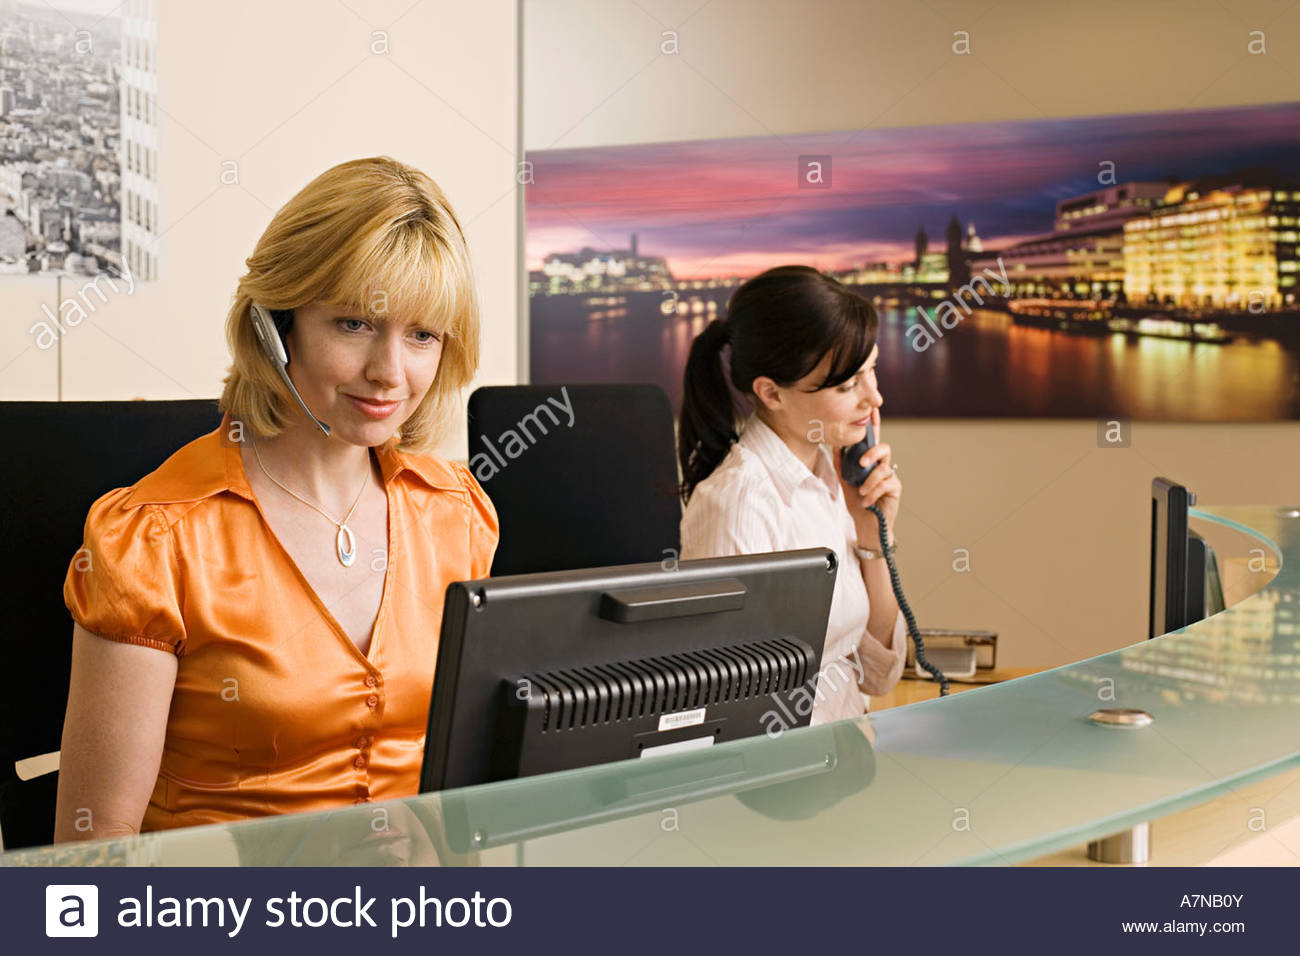 Two receptionists working at reception desk woman holding phone receiver second woman with headset - Stock Image